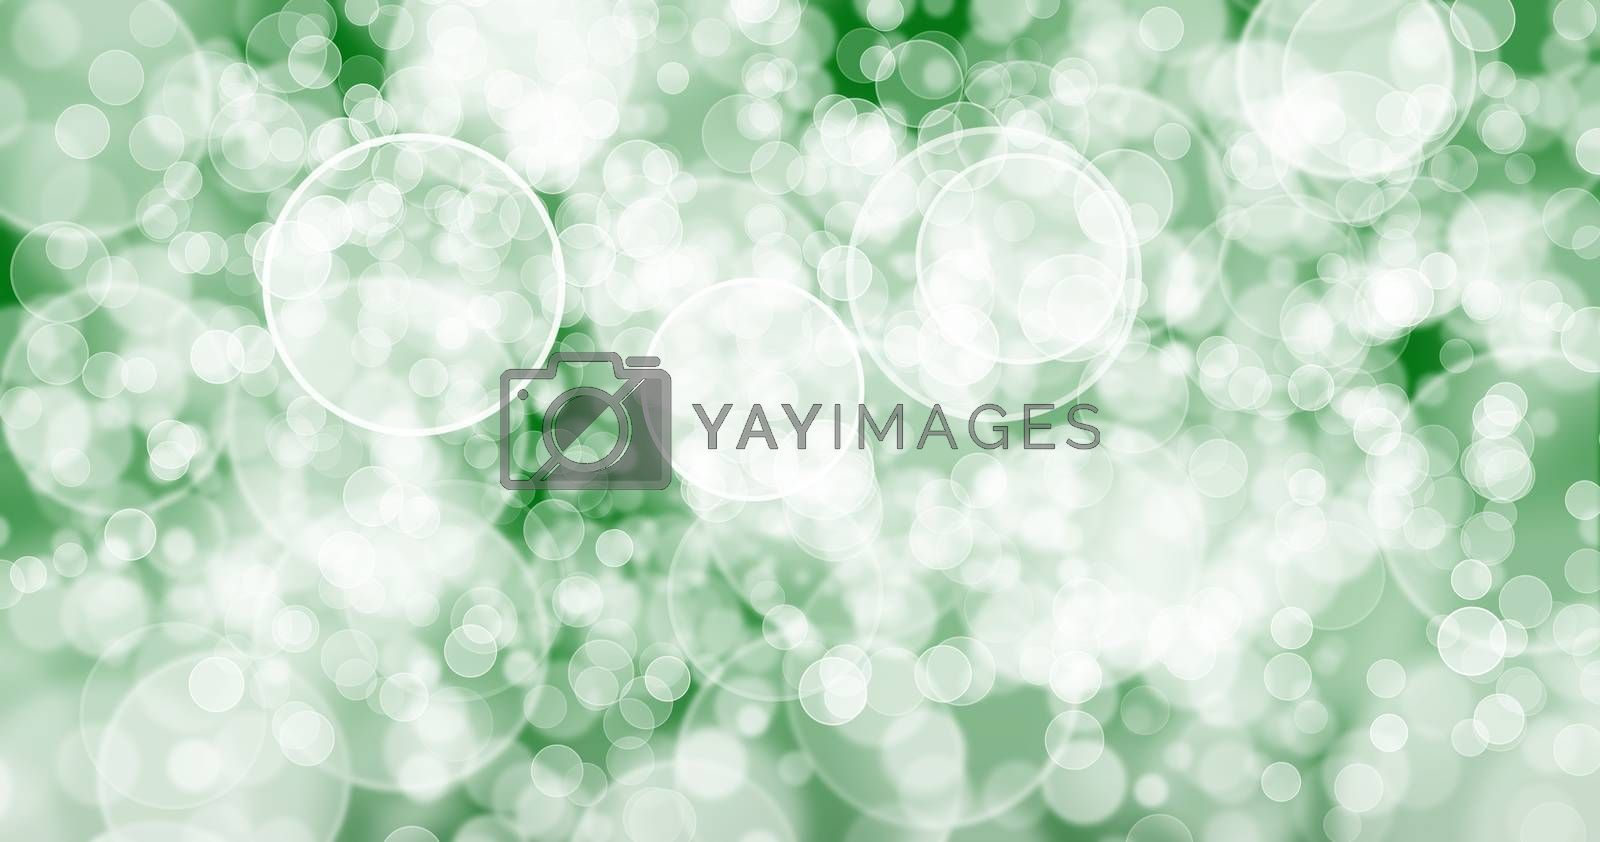 The background has bright green bubbles. by thitimon